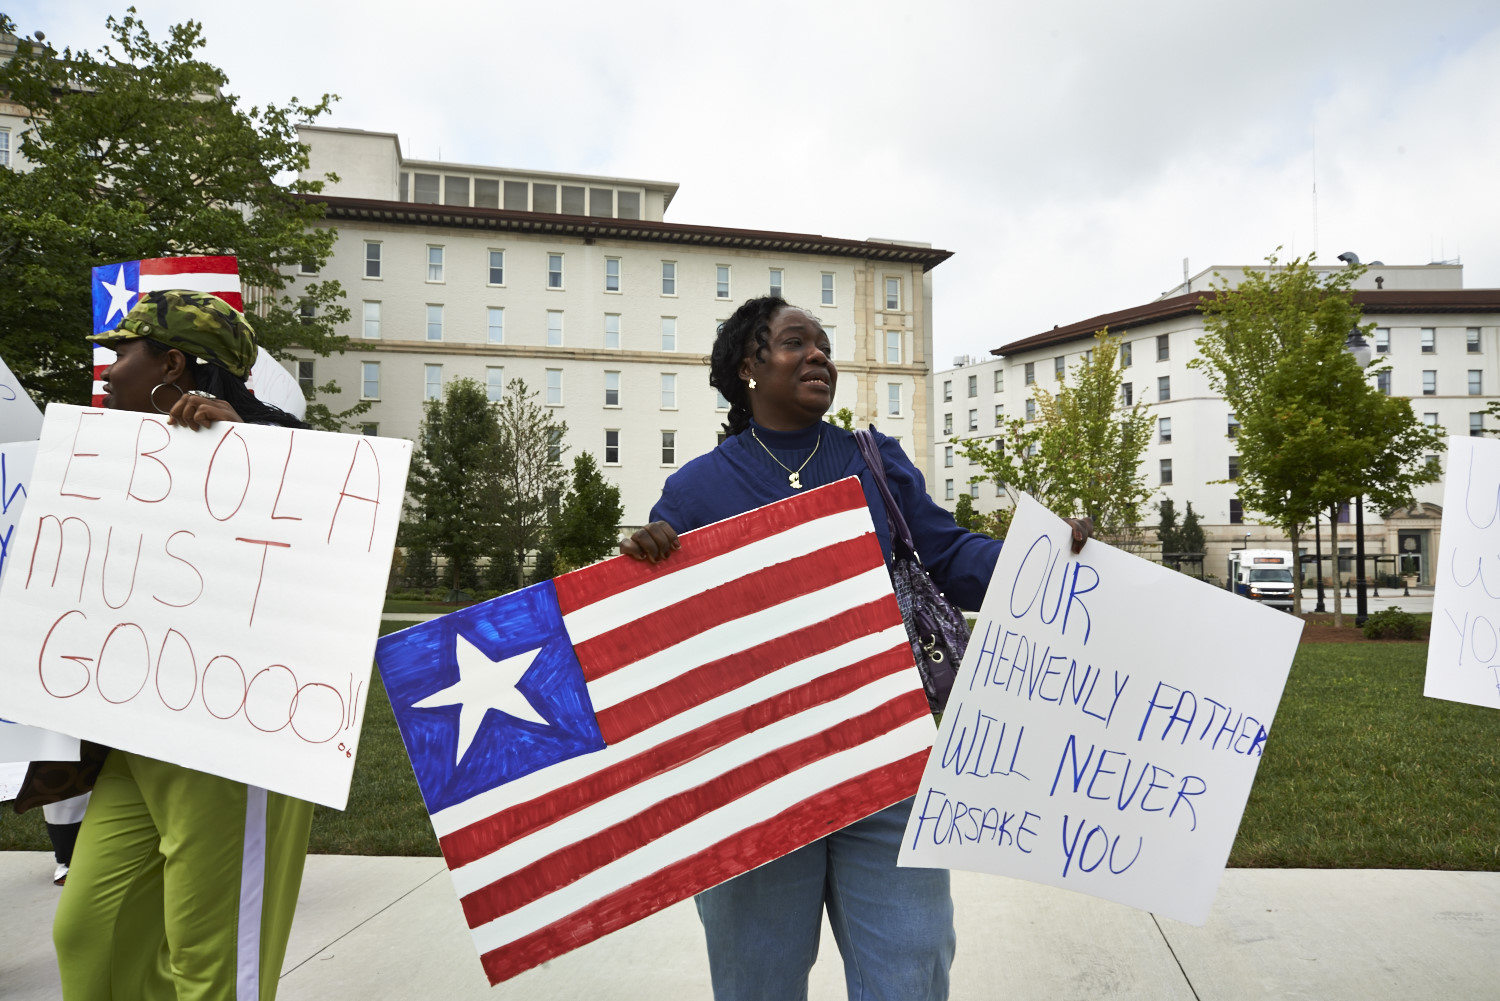 Garmai Kpardeh, a member of the Liberian Association of Metropolitan Atlanta rallying in front of Emory University Hospital, August 9.